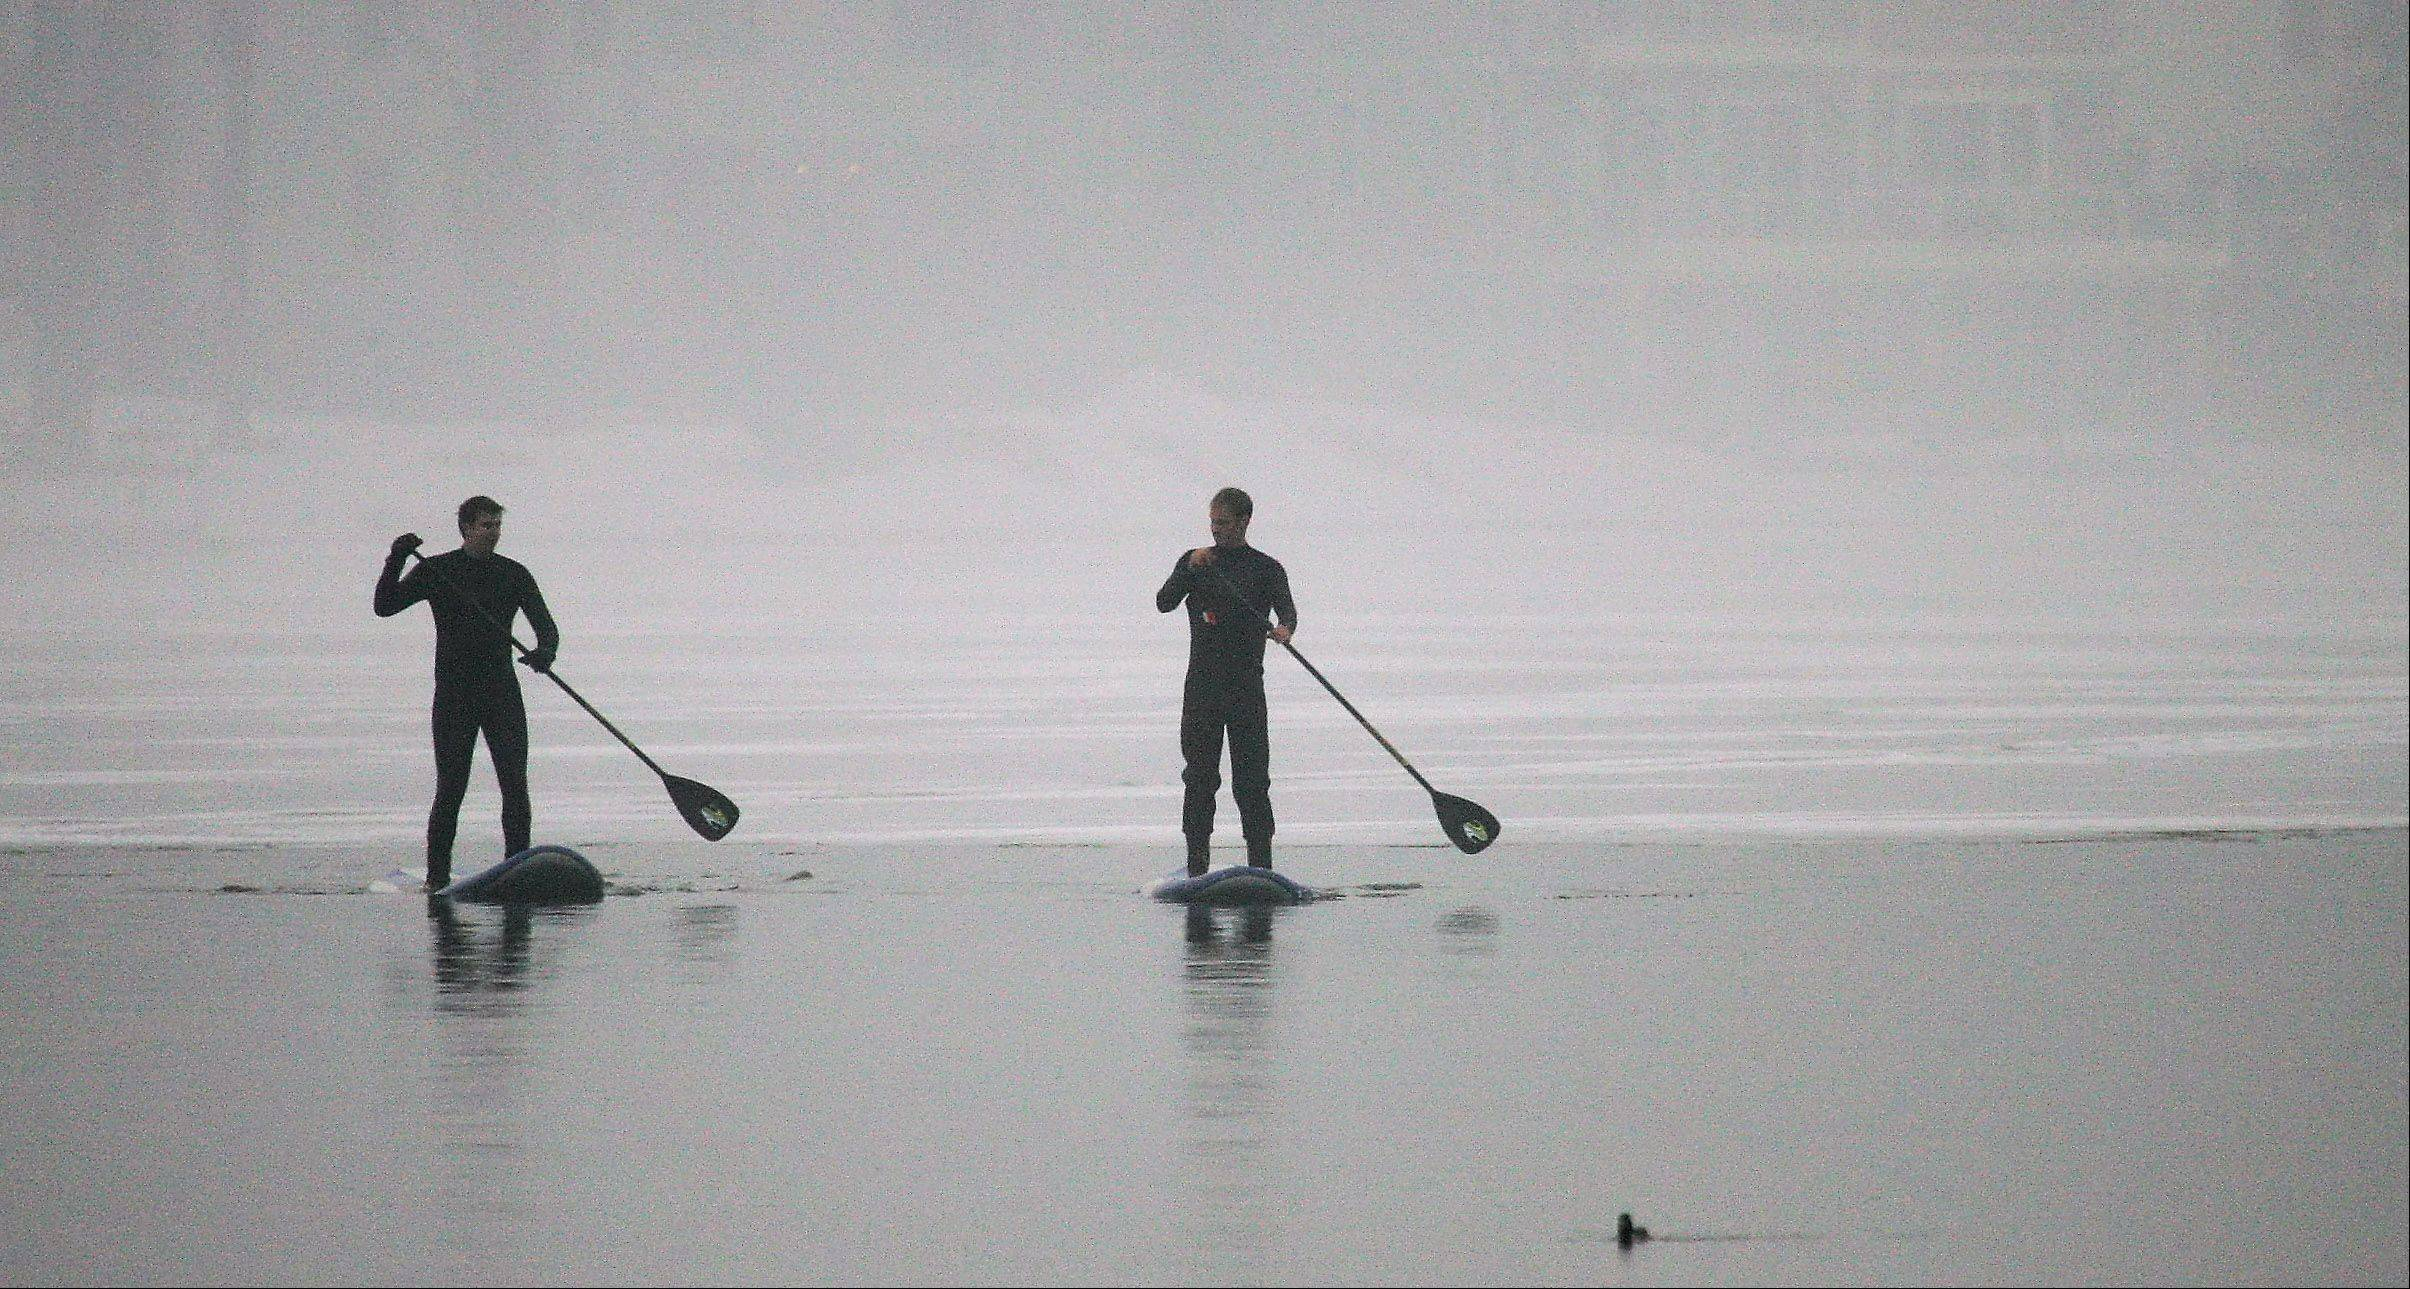 Two water enthusiasts take to the open sections of water on stand up paddle boards as they navigate around the ice on Diamond Lake in Mundelein. Fog surrounded them as they wore wetsuits to go from one ice island to the next.